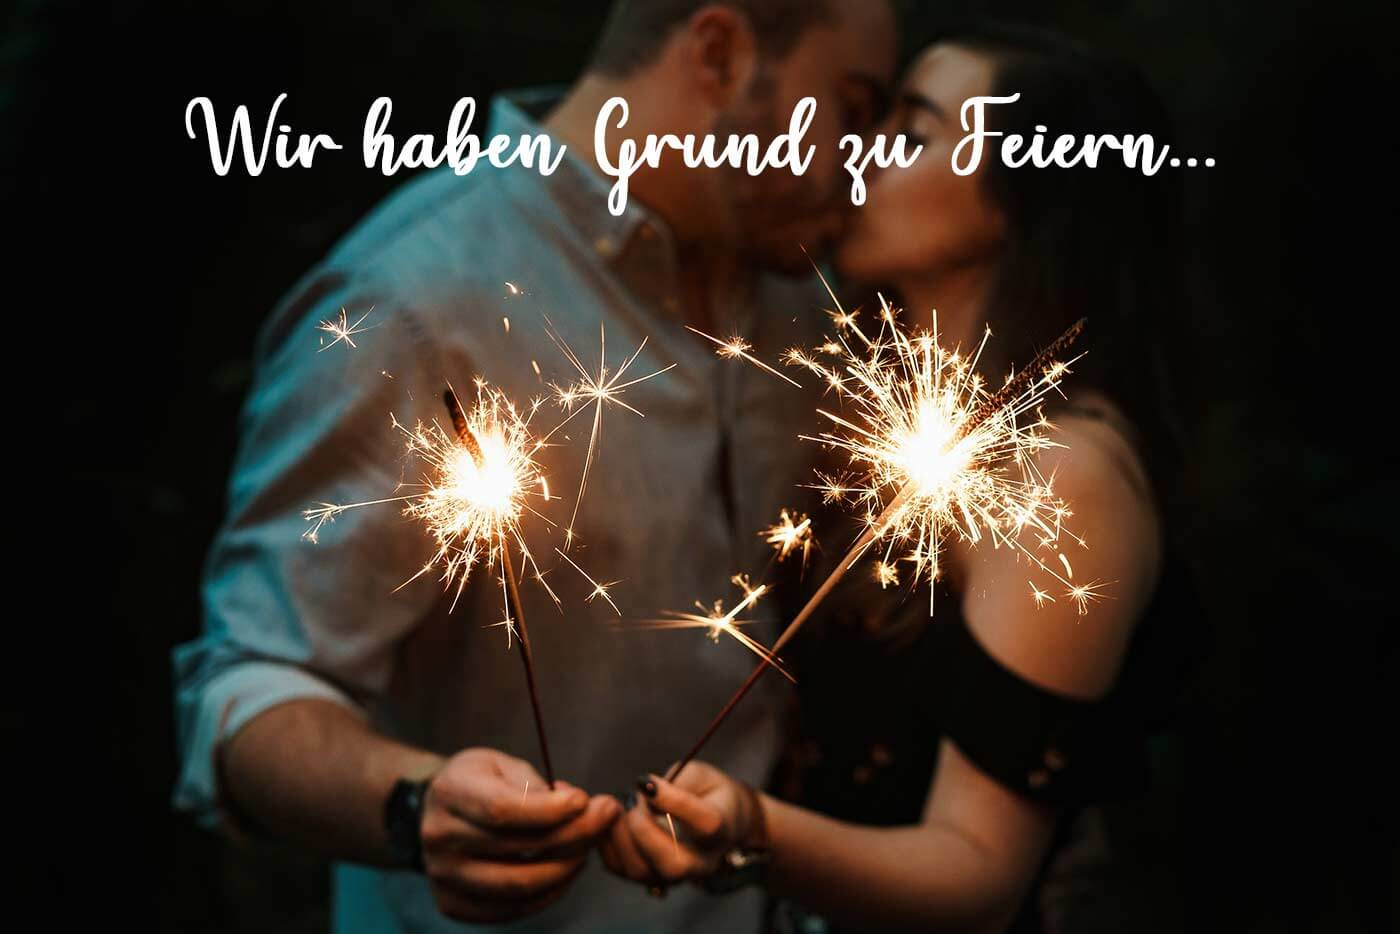 Save the Date Foto Ideen